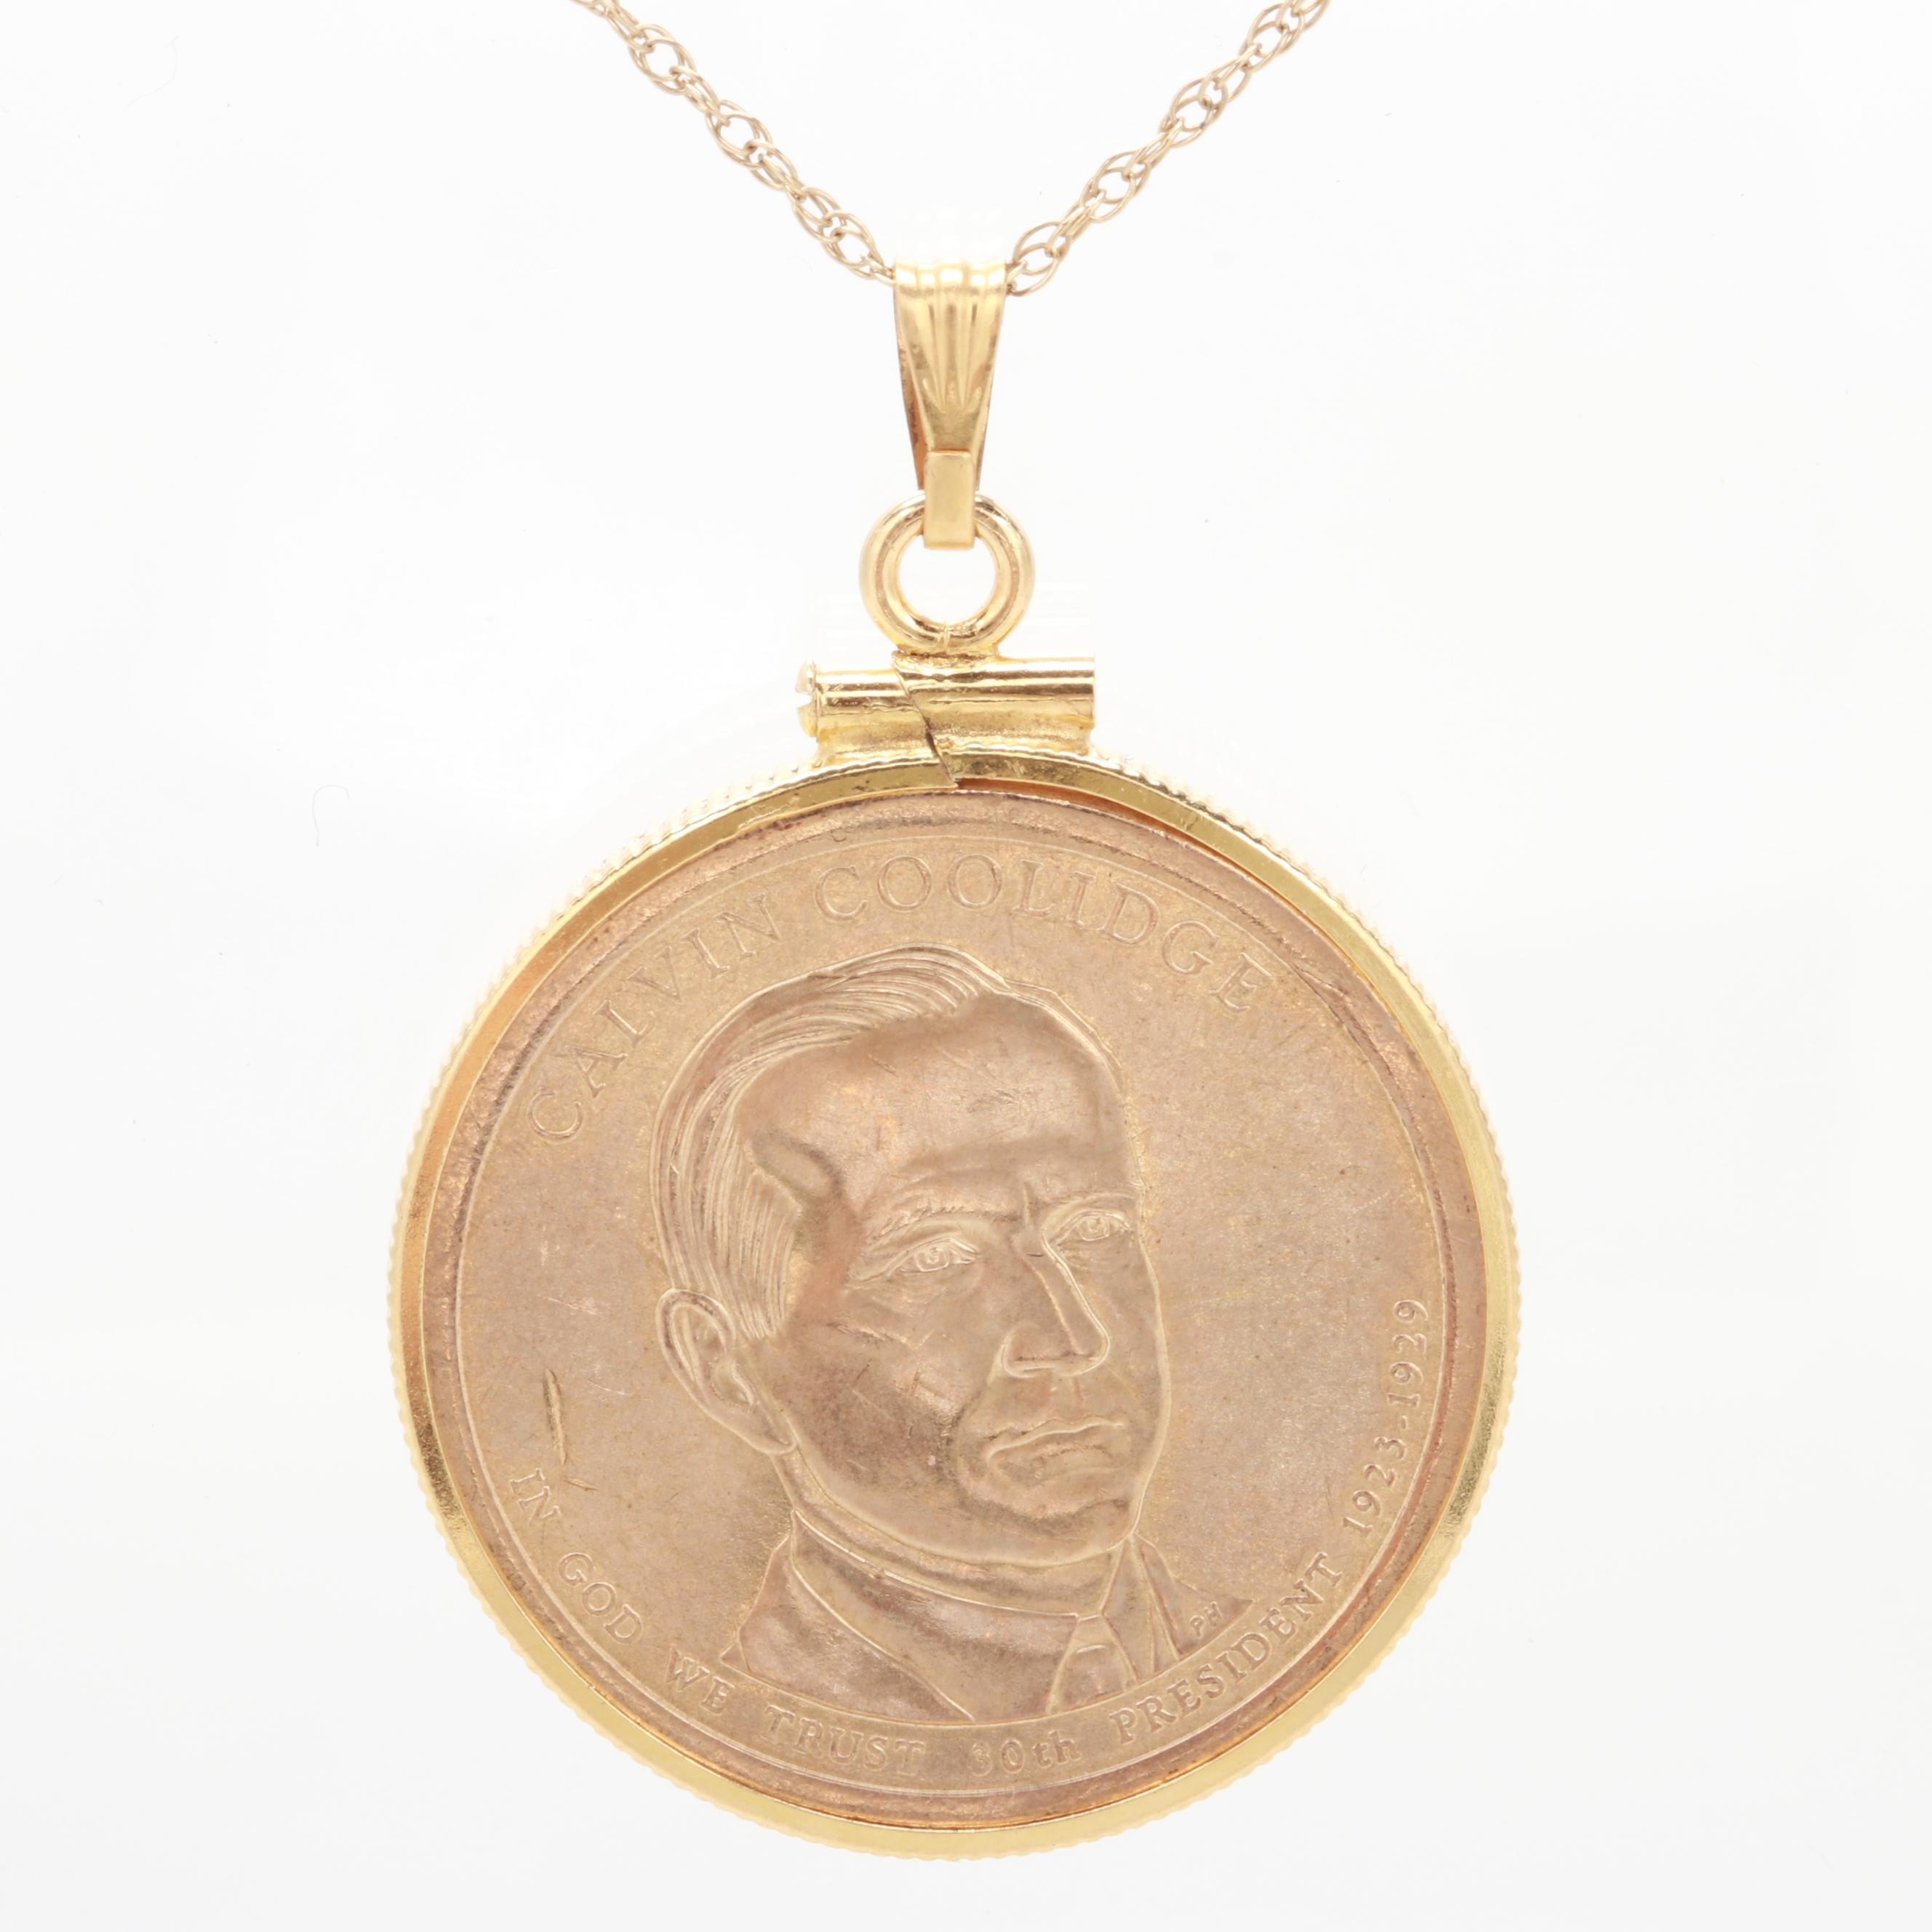 Gold Tone Pendant Necklace with 2014 Calvin Coolidge Presidential Dollar